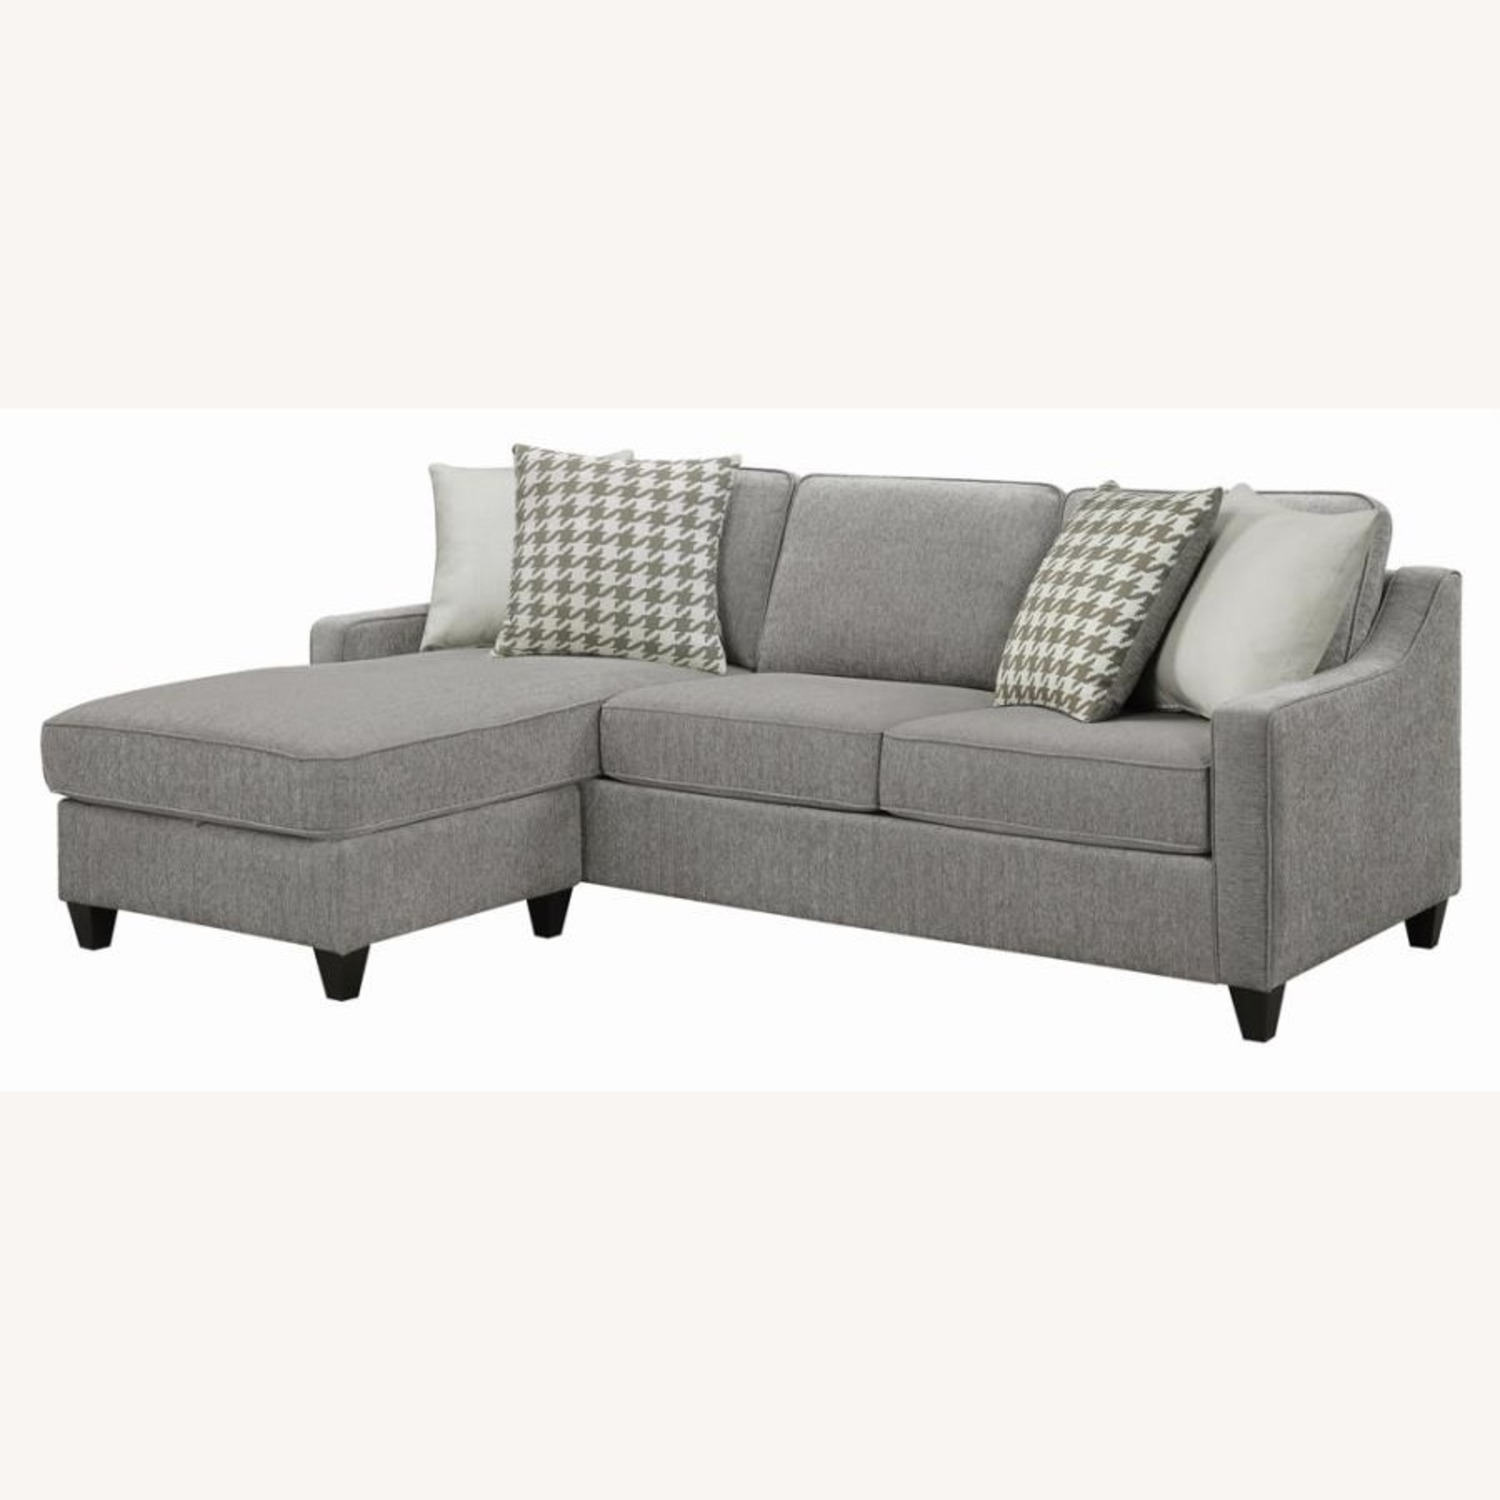 Sectional In Charcoal Chevron Dobby Upholstery - image-1